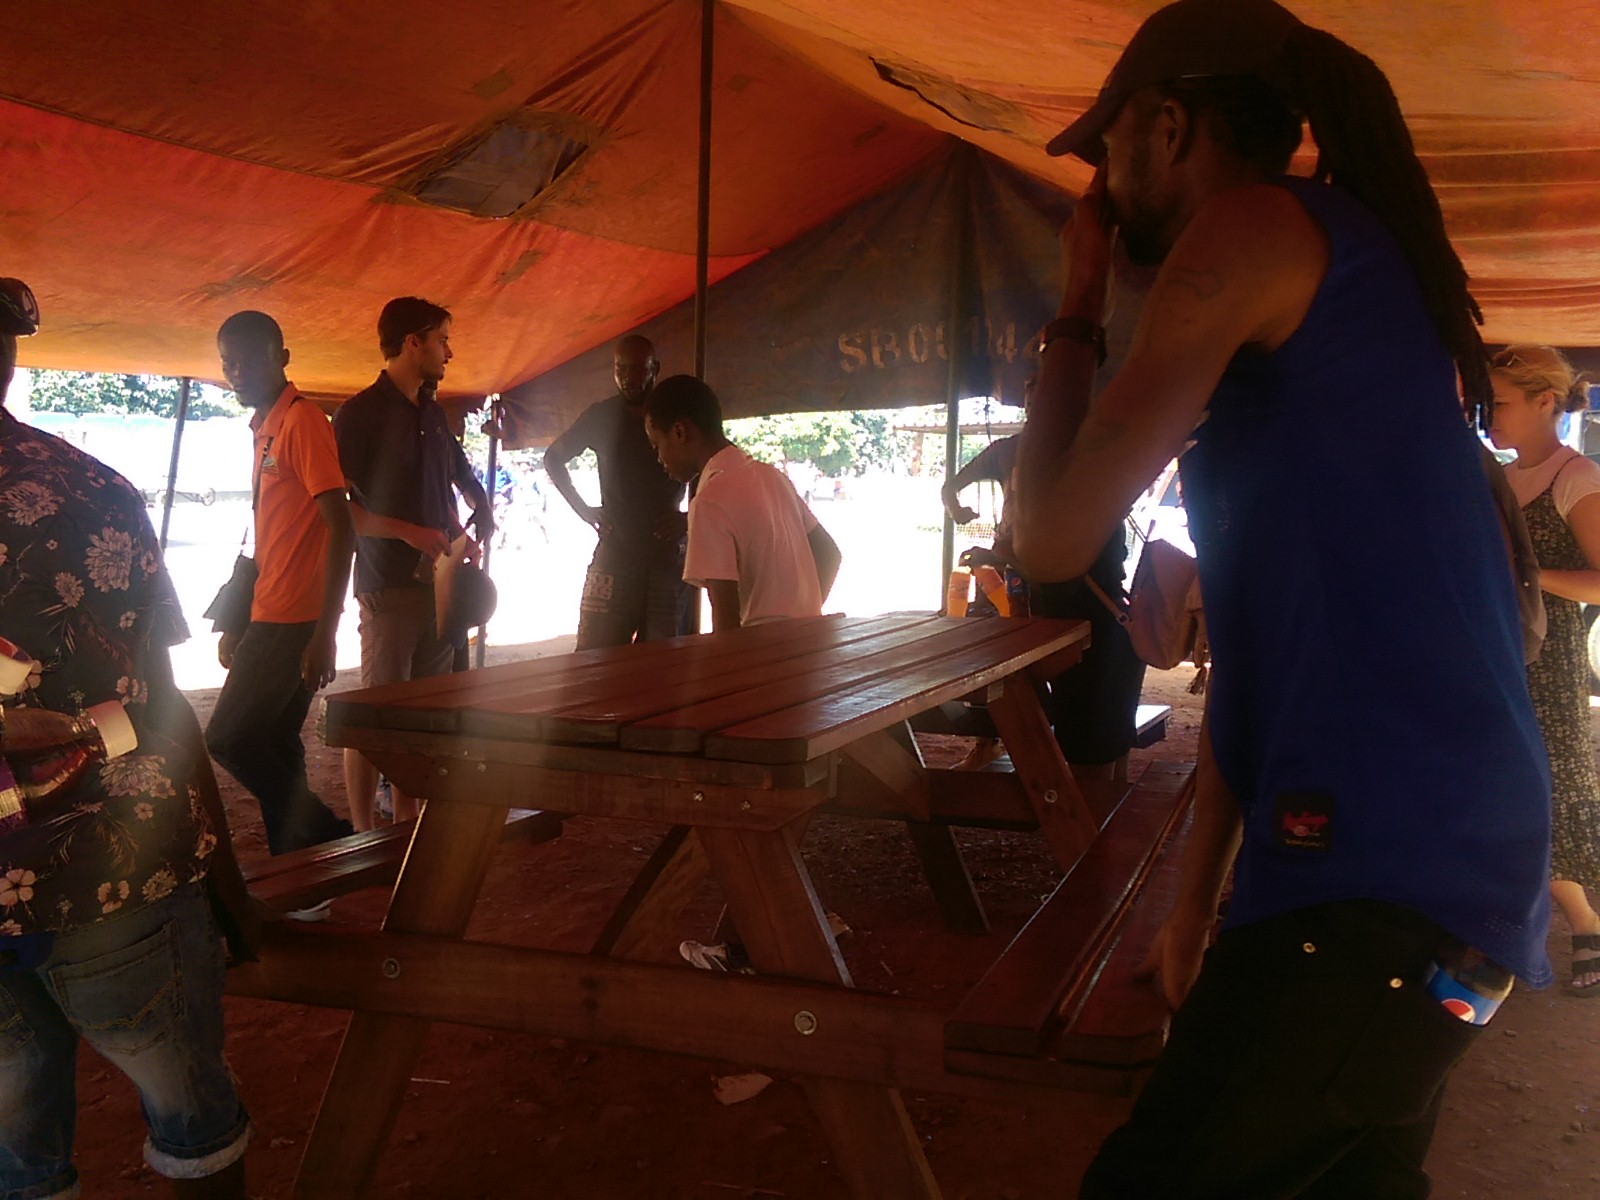 Several people are moving a bench under an orange awning